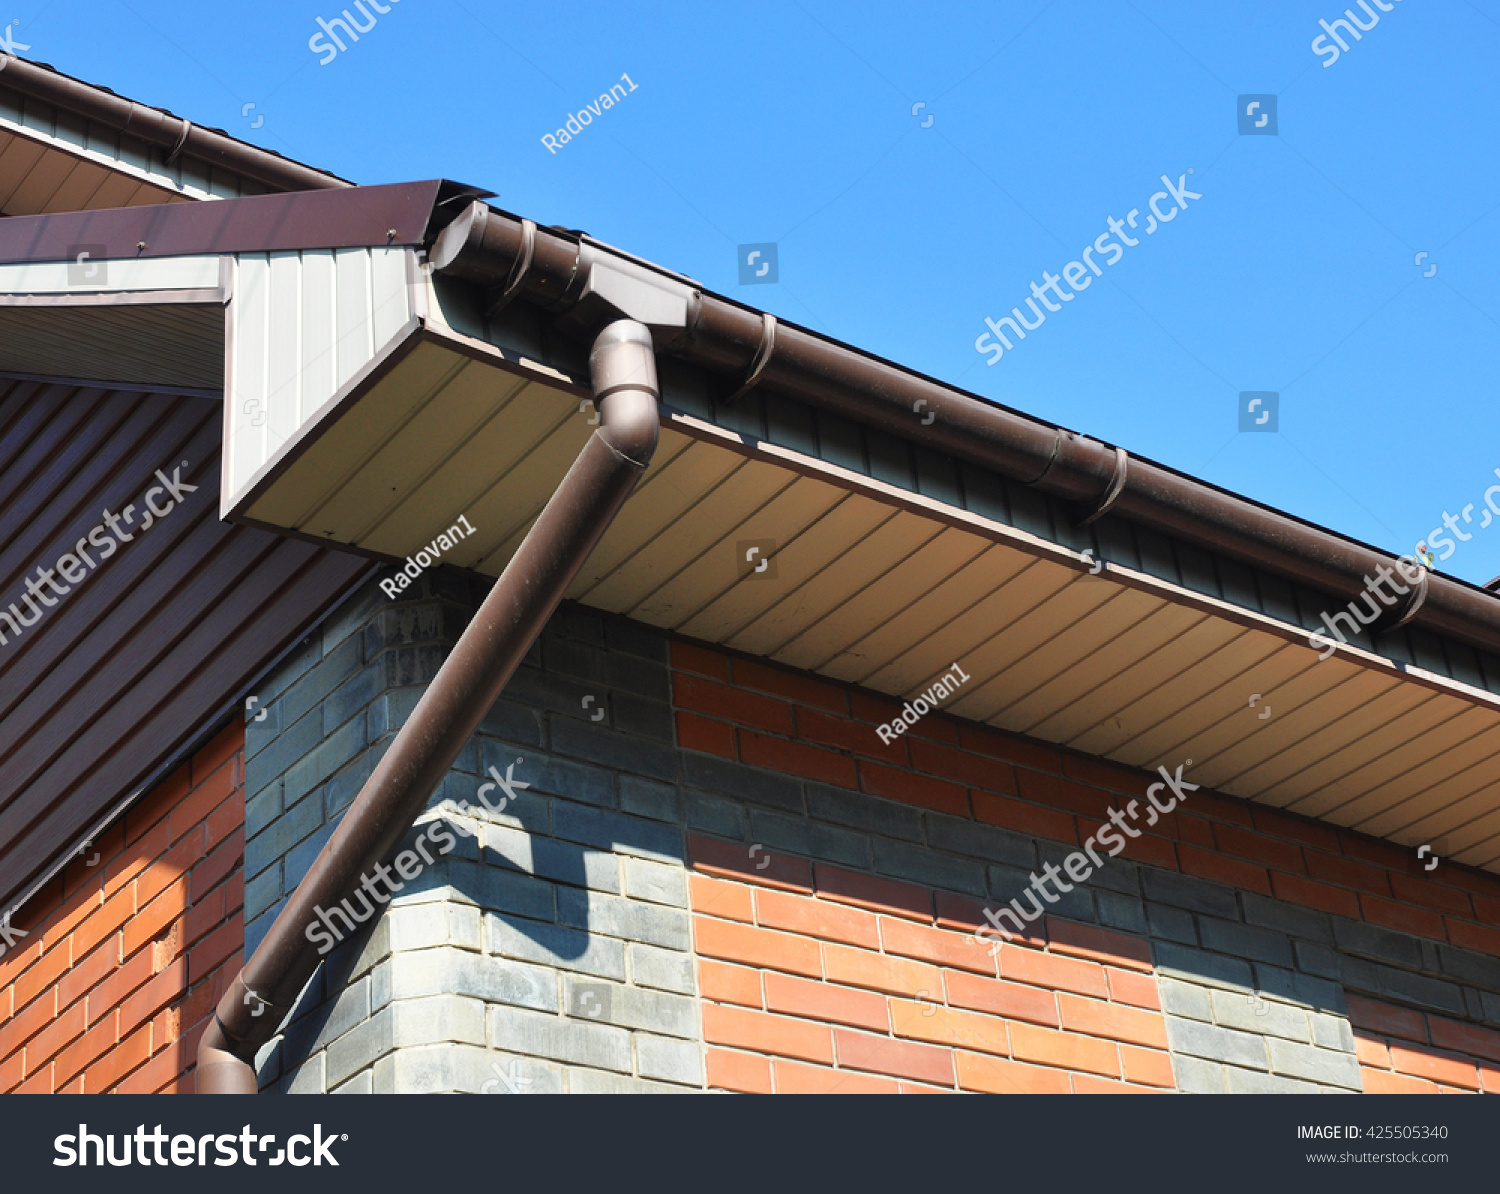 Rain Gutter With Downspout Pipe. Stock Photo 425505340 : Shutterstock